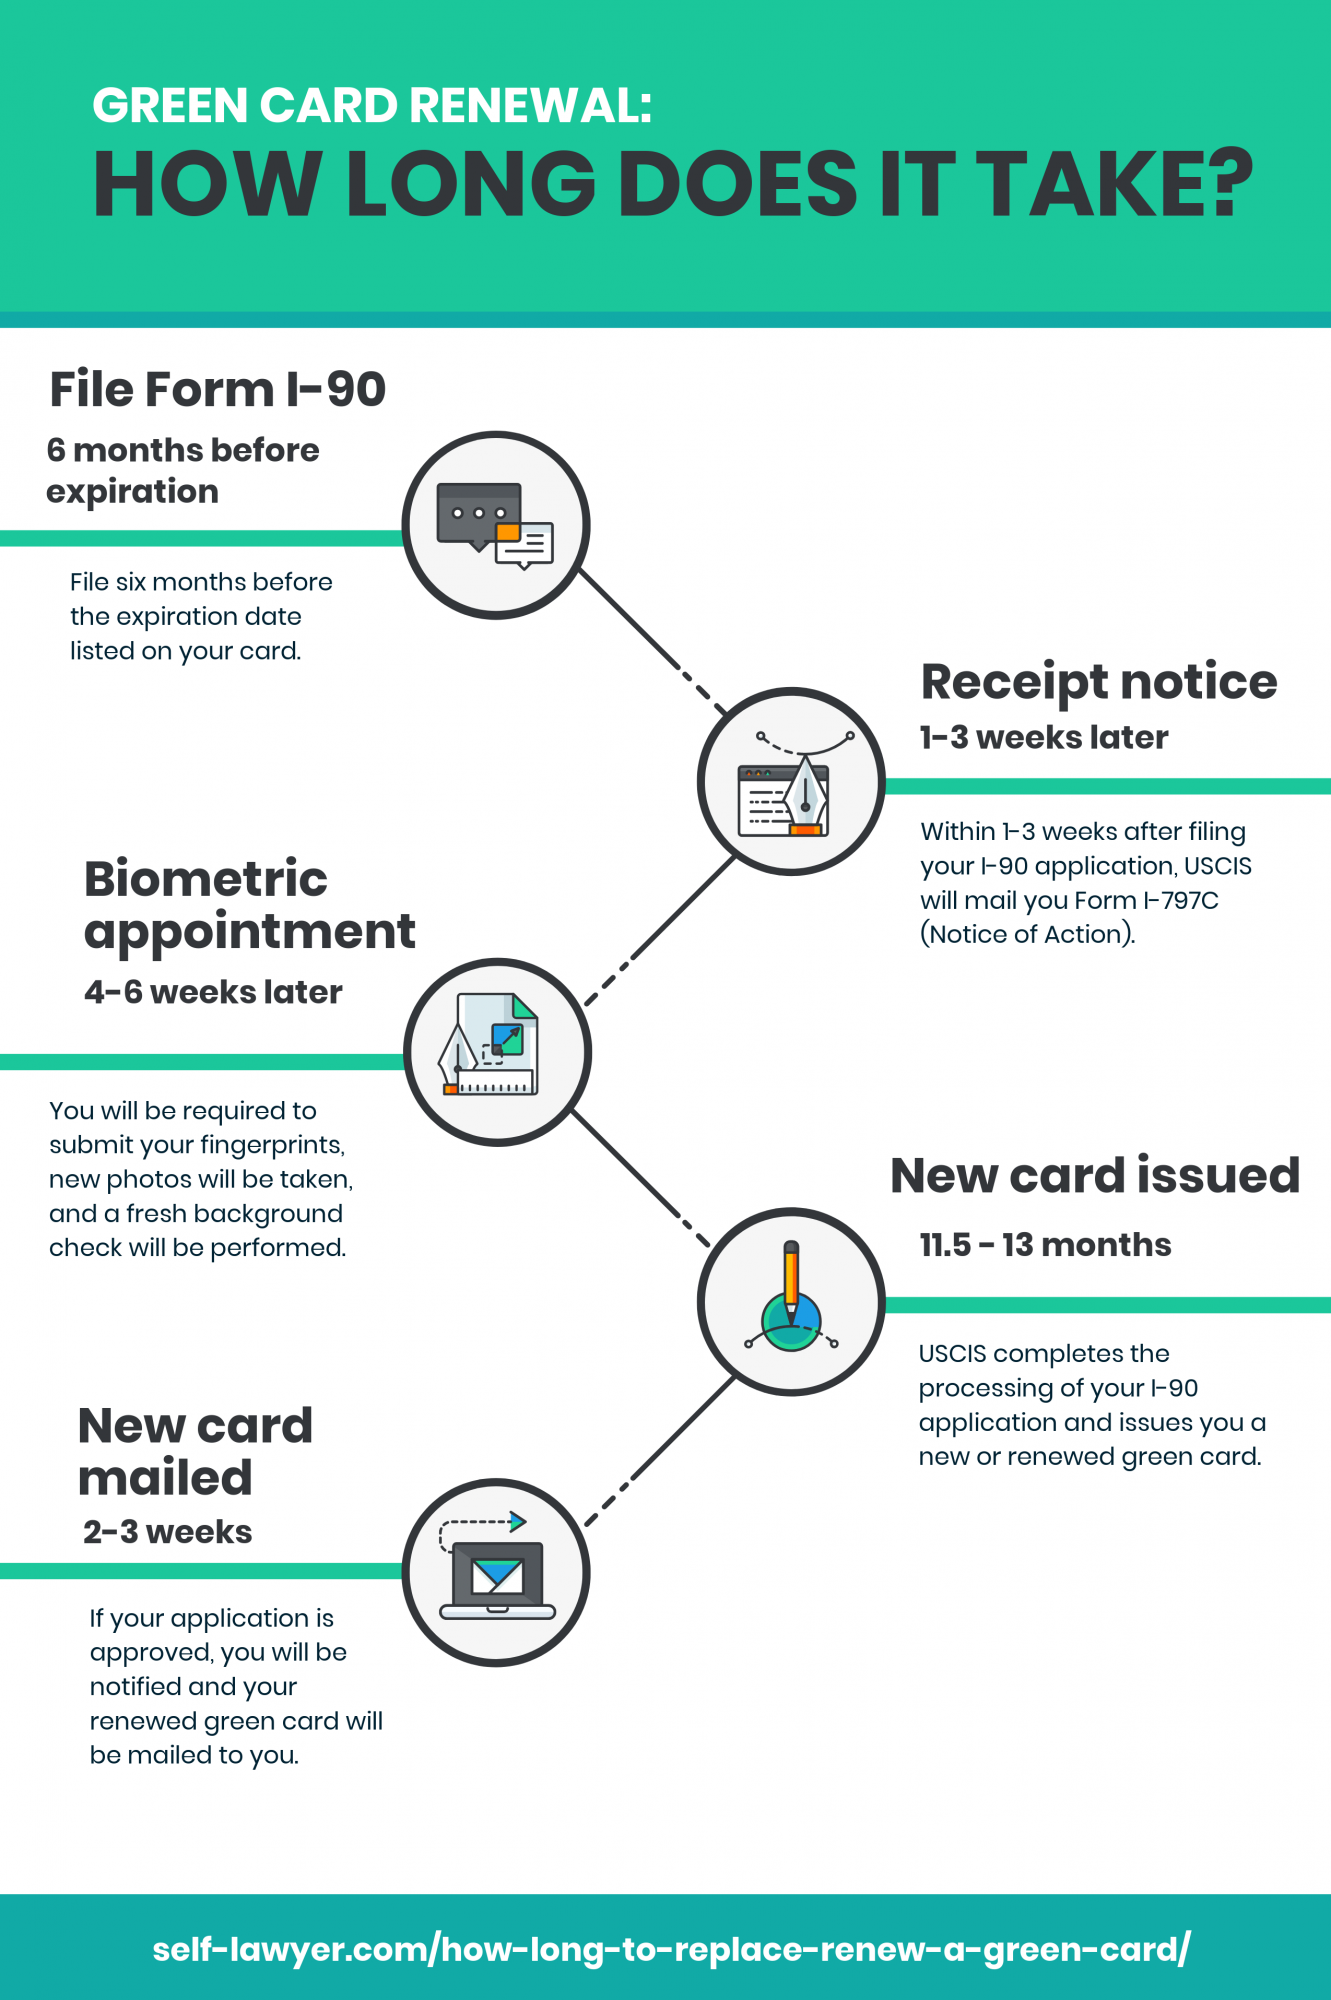 How long does it take to renew a green card